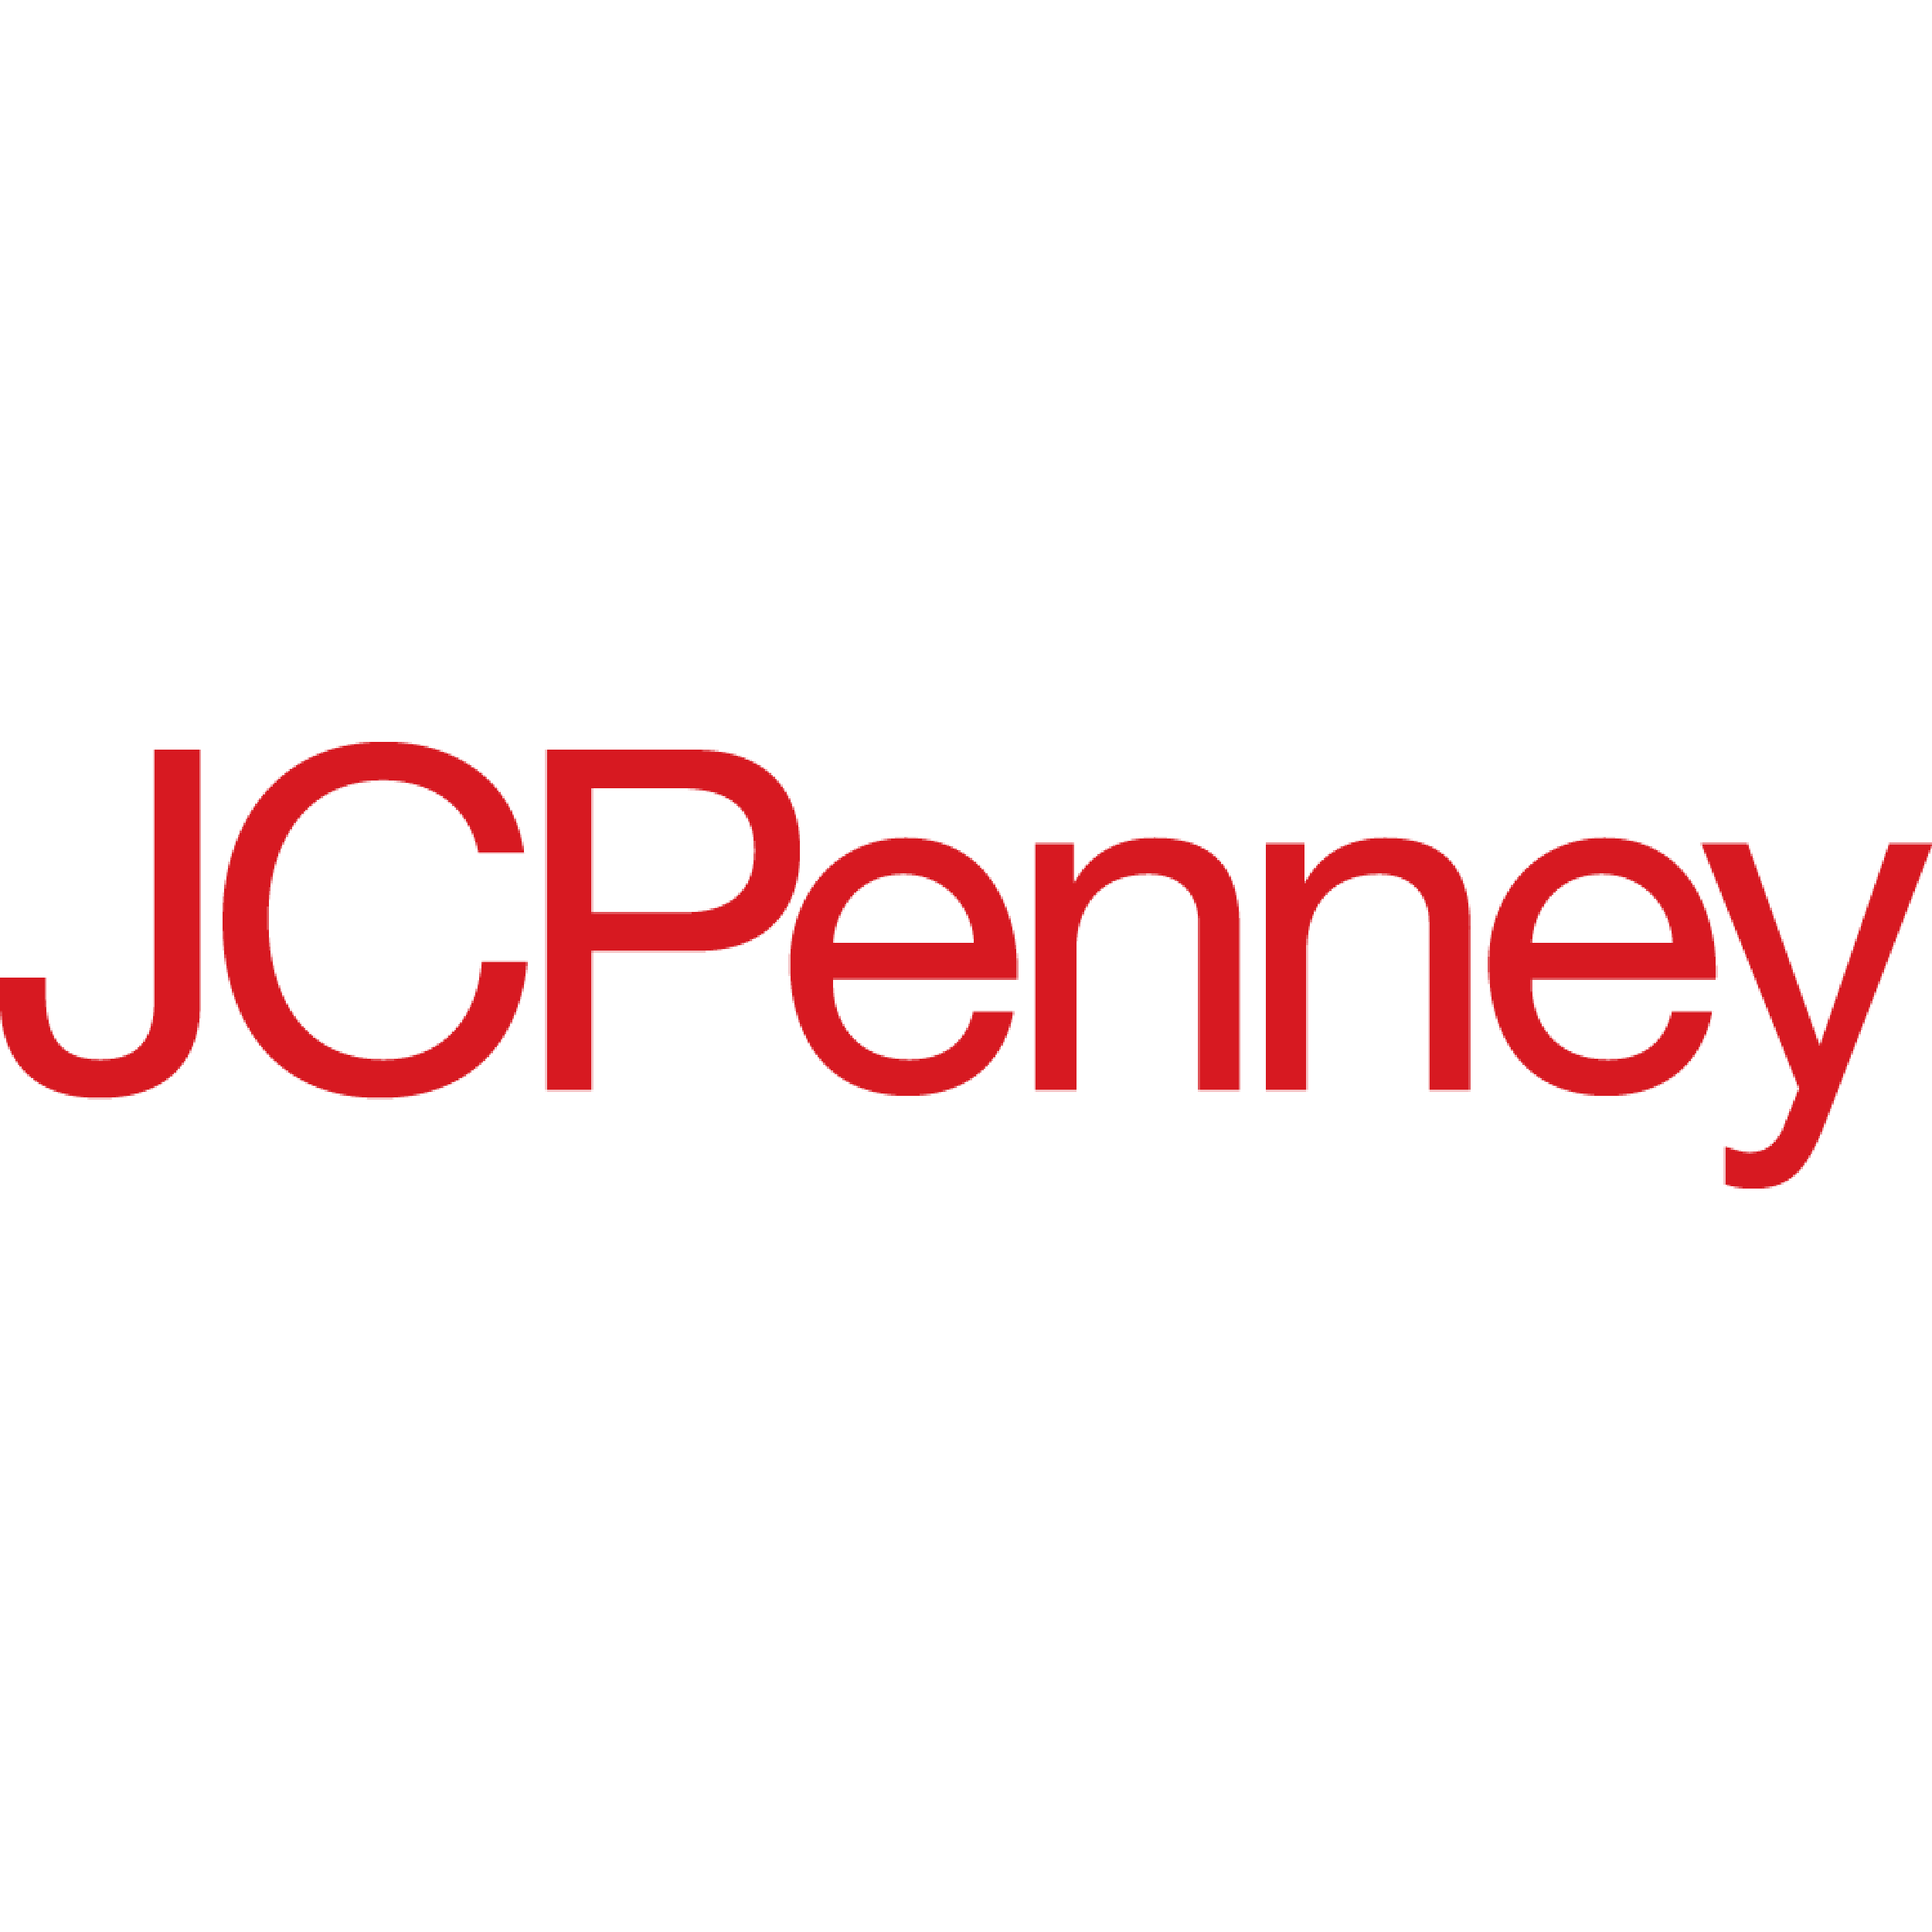 JCPenney - Chattanooga, TN - Department Stores